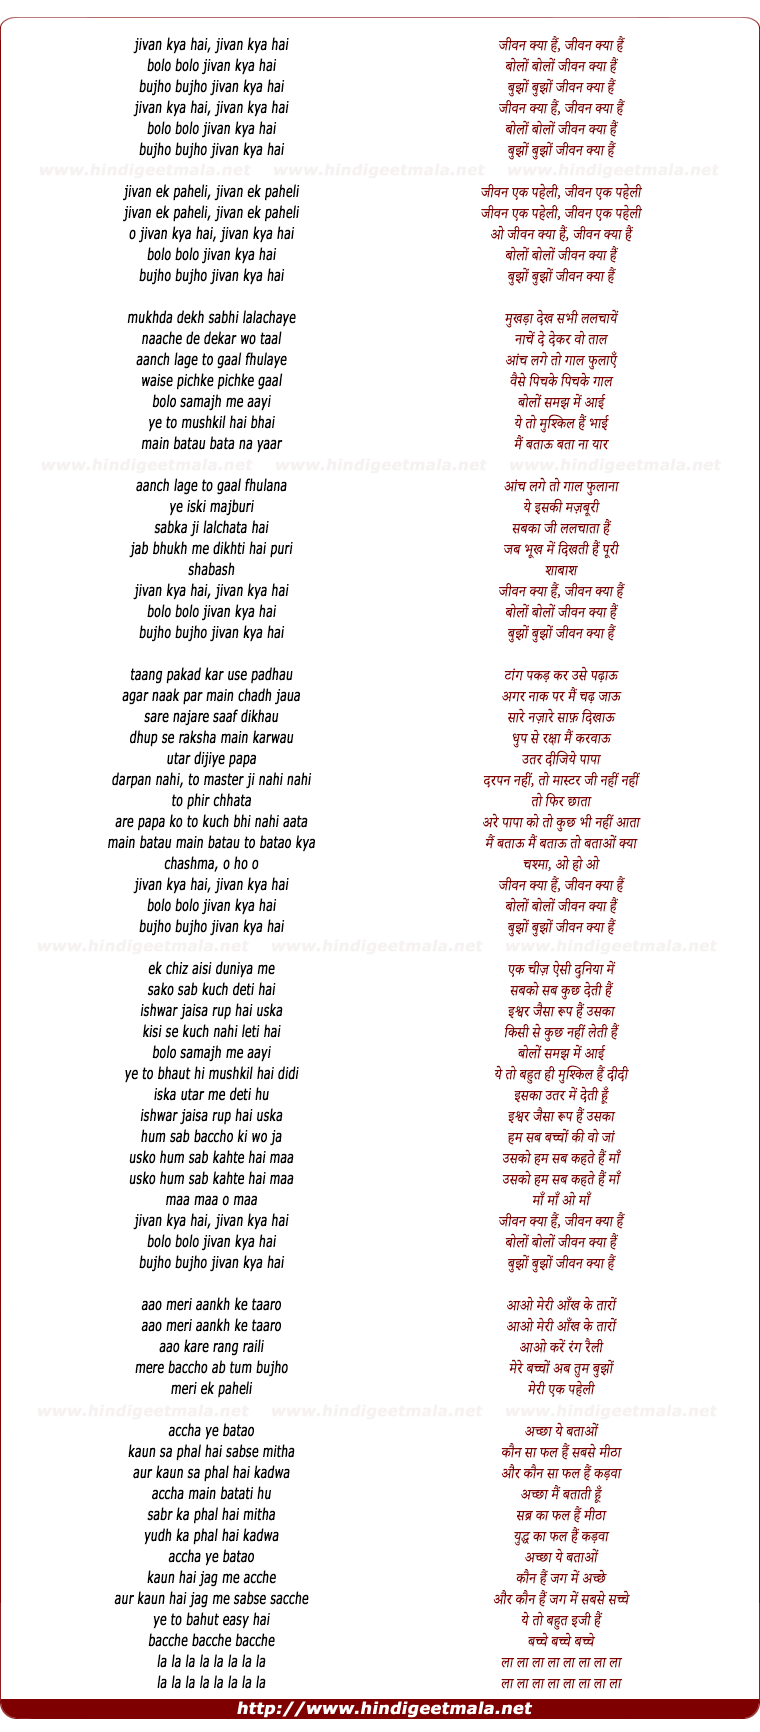 lyrics of song Jeevan Kya Hai